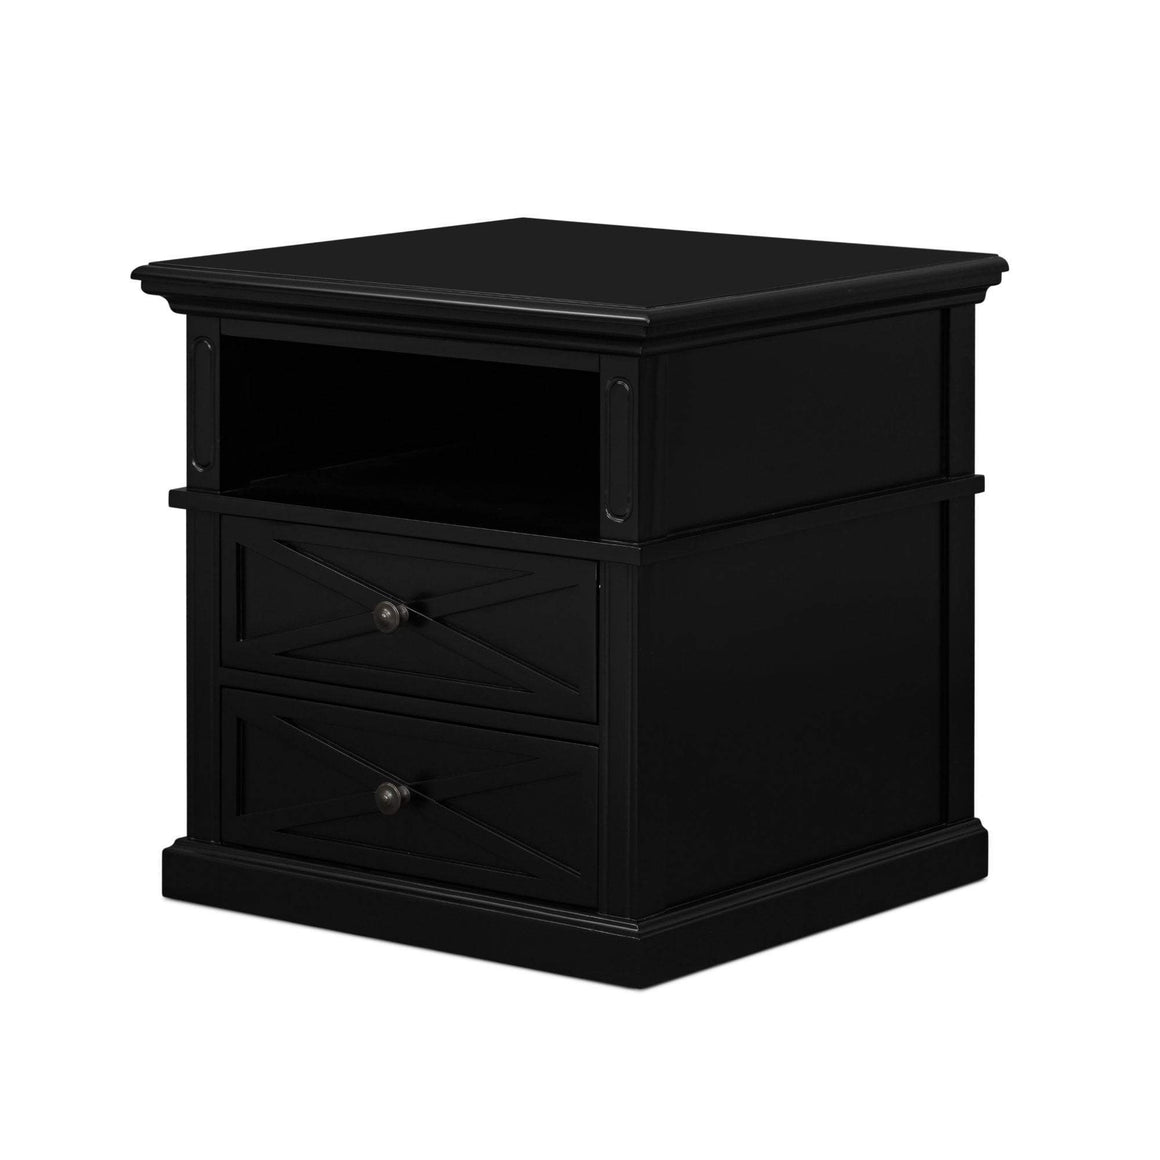 Sorrento Black Large 2 Draw Bedside Table